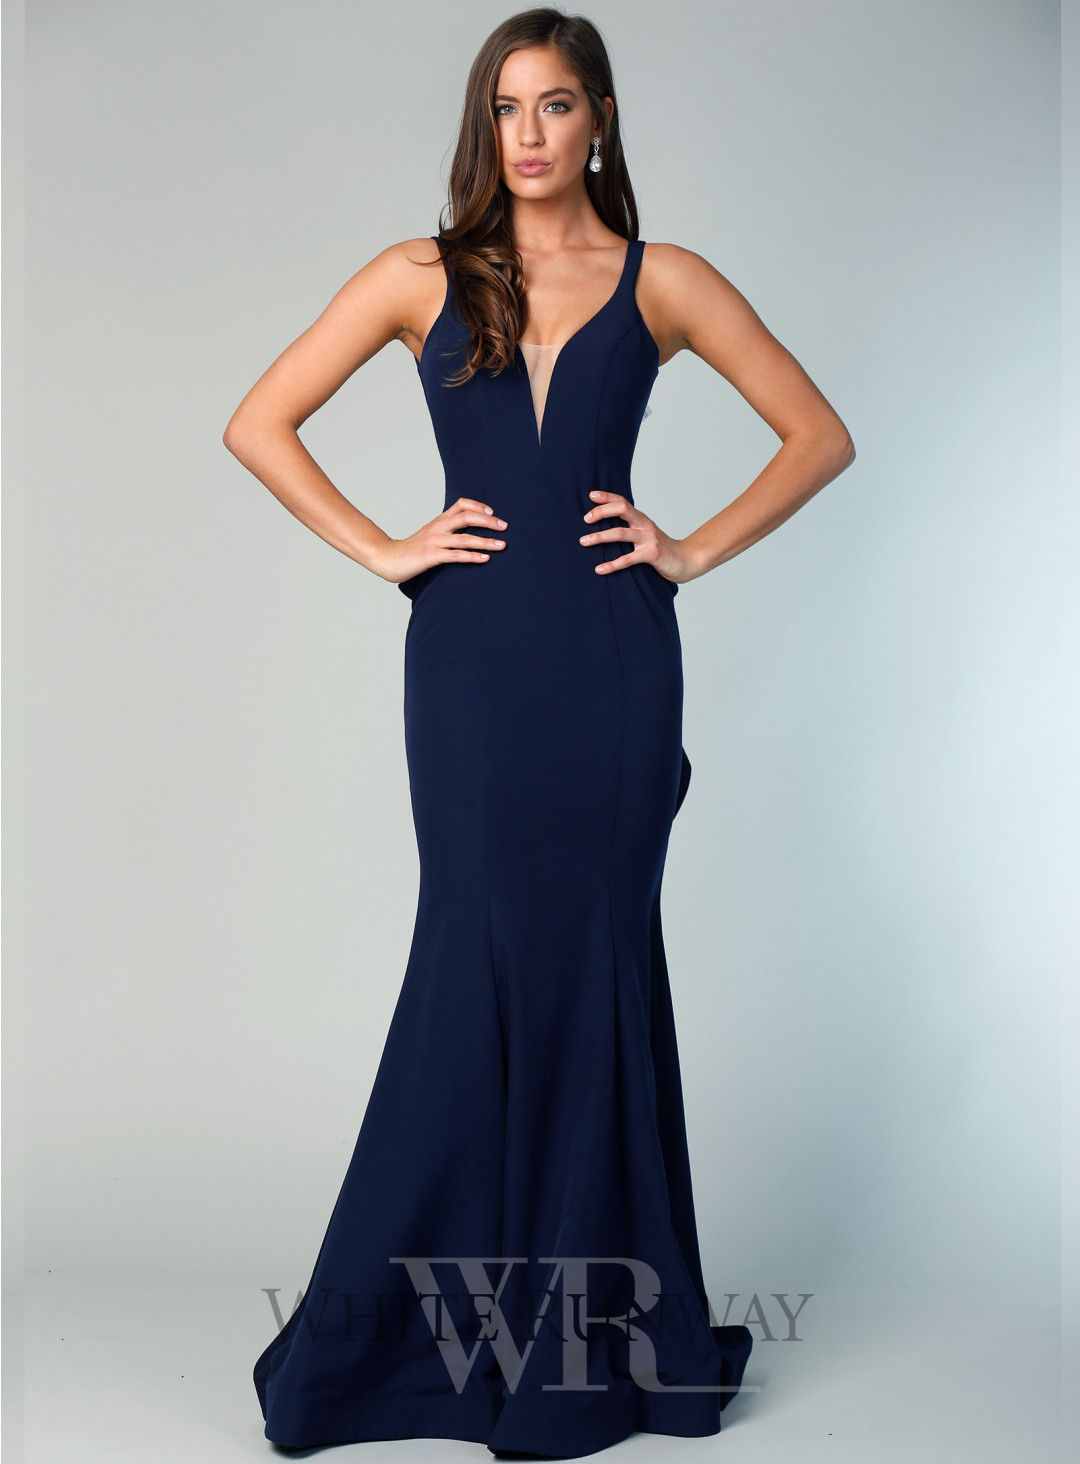 ce57a2fd91 Veronica Gown. A stunning full length gown by Tinaholy. The Veronica Gown  features a